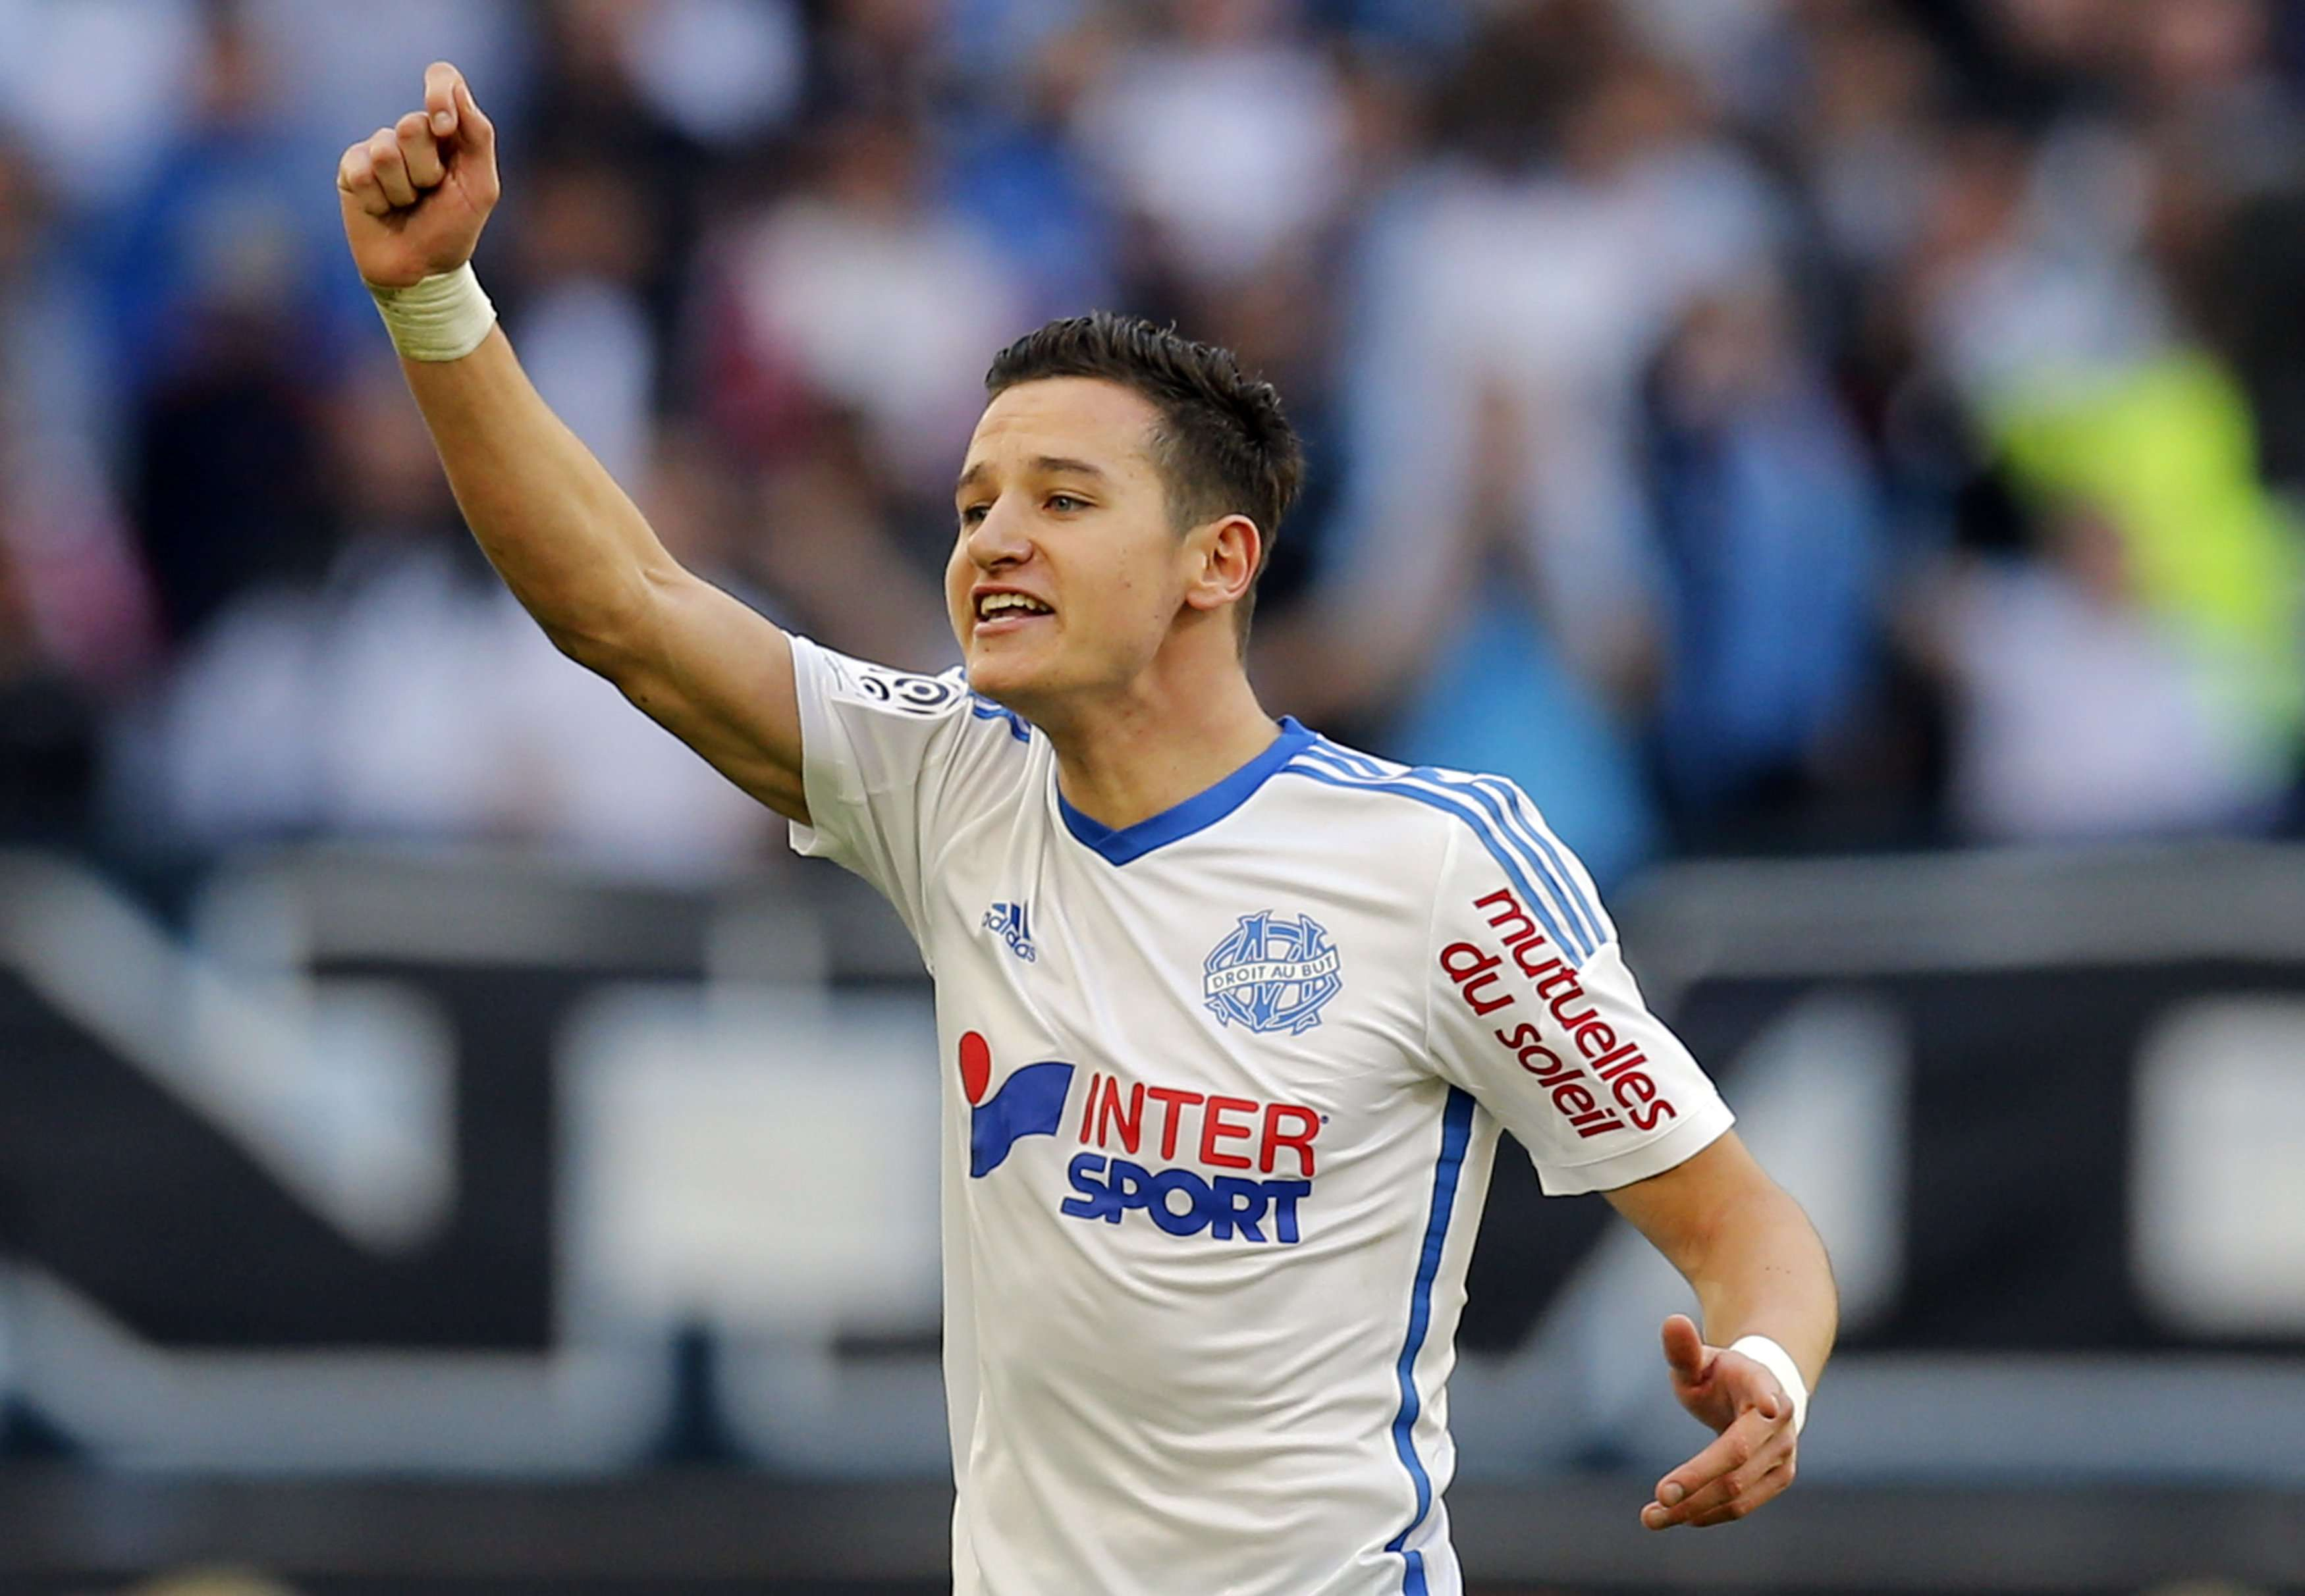 Olympique Marseille's Florian Thauvin celebrates after an own goal was scored during their French Ligue 1 soccer match against Lille at the Velodrome stadium in Marseille, December 21, 2014. REUTERS/Jean-Paul Pelissier (FRANCE - Tags: SPORT SOCCER) Foto: JEAN-PAUL PELISSIER/REUTERS